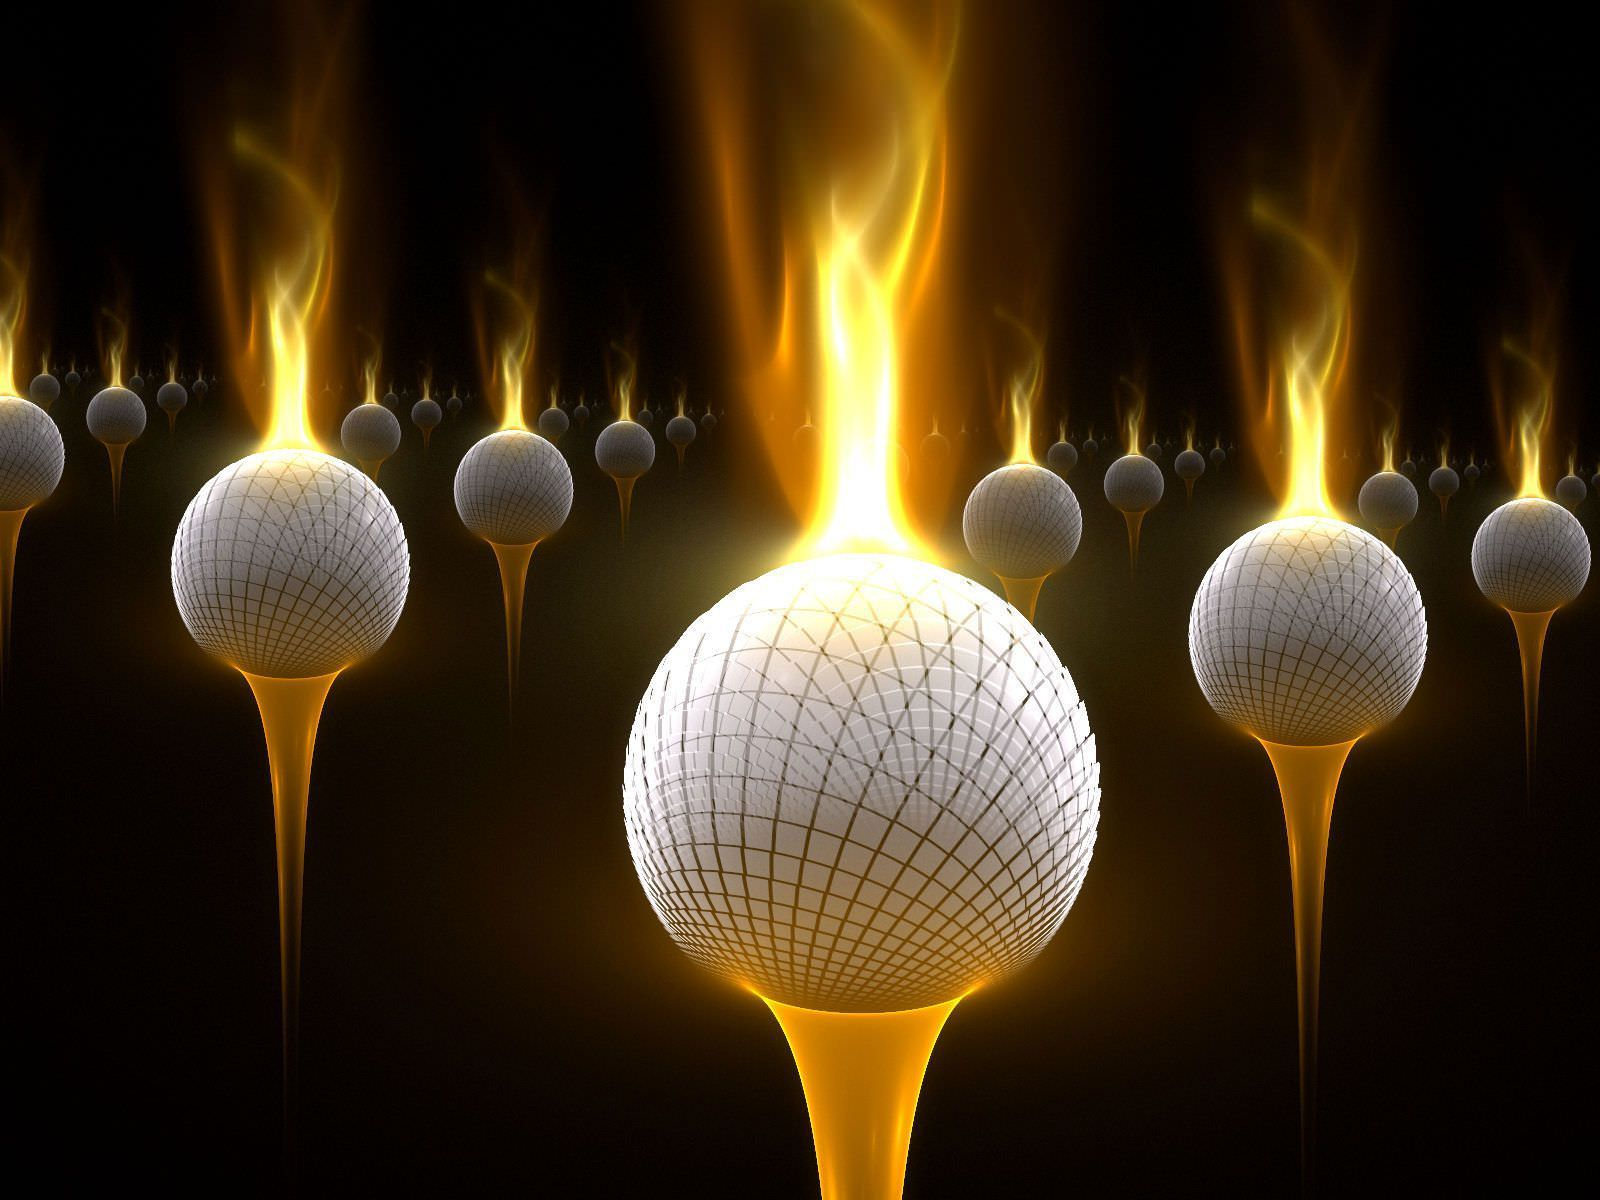 Fire Golf Balls Elegant Wallpaper